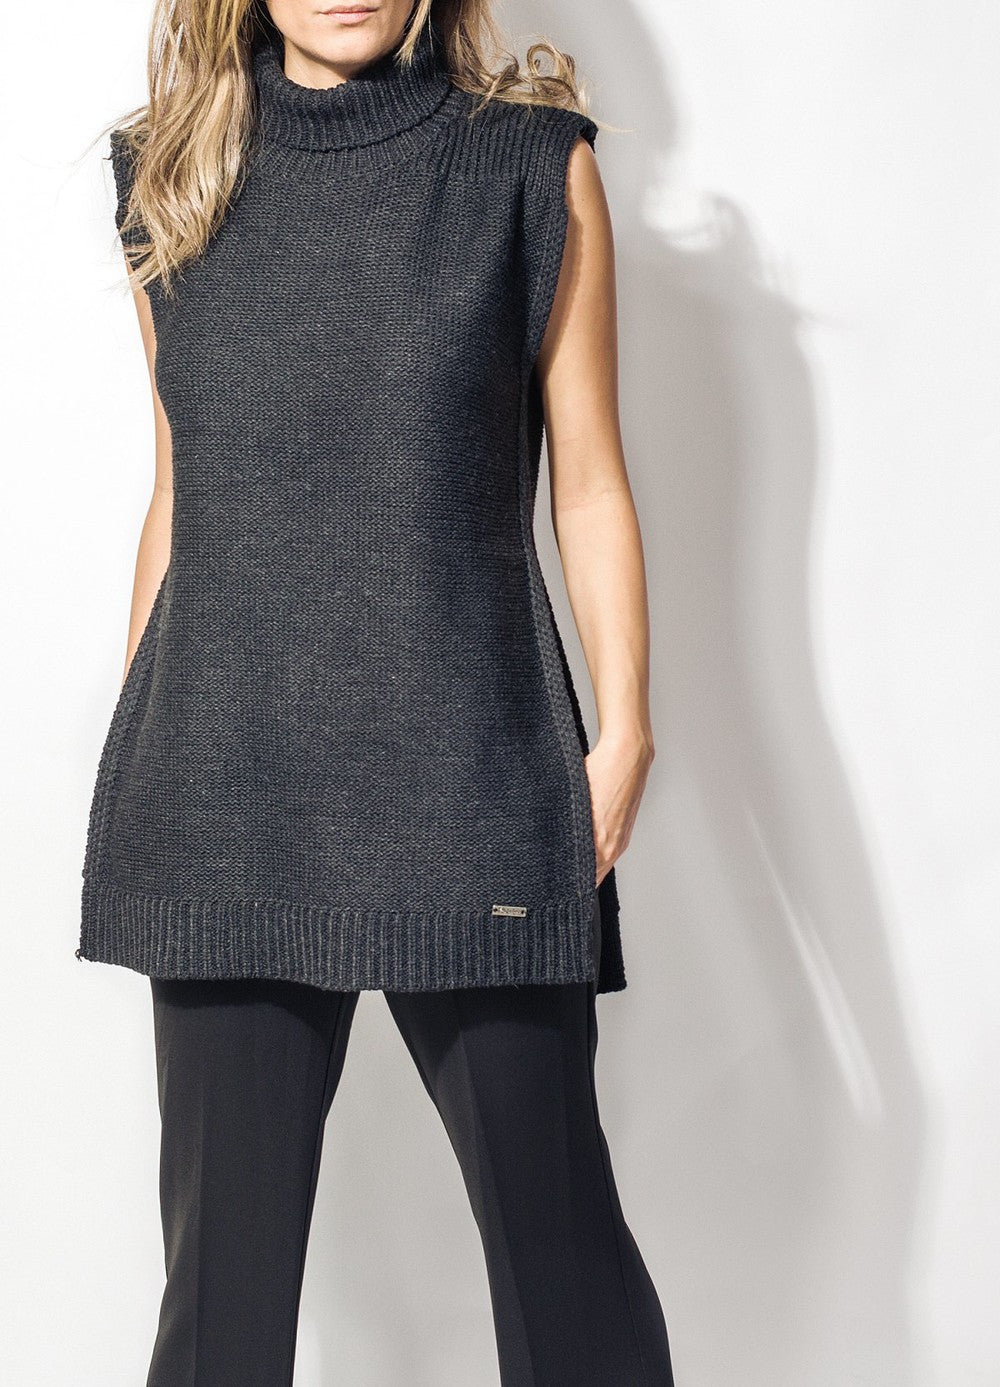 Sleeveless Black Sweater.